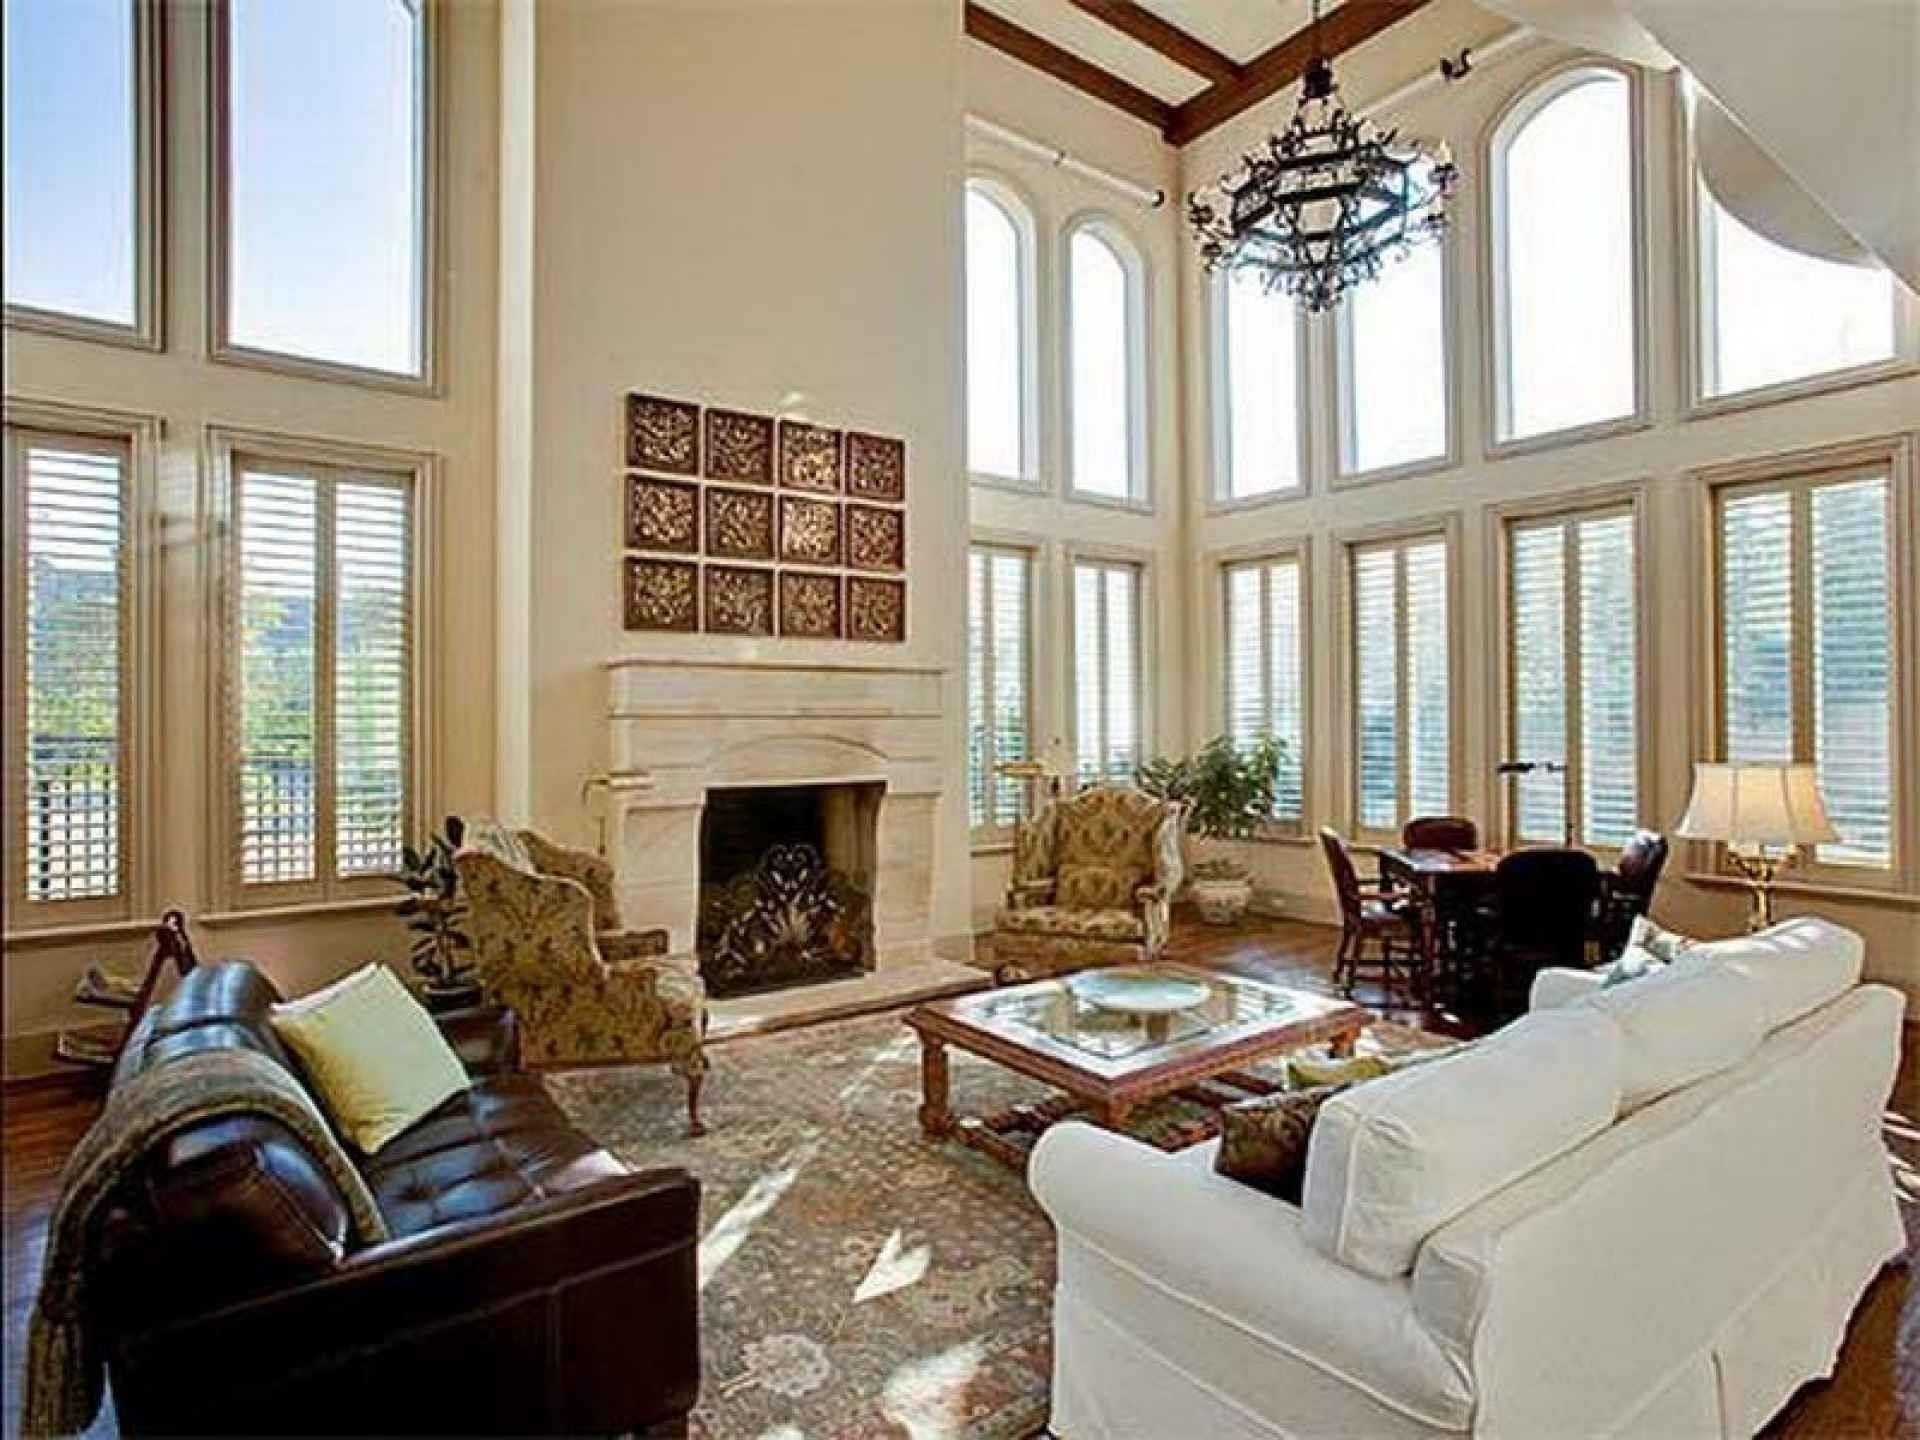 High Ceiling Family Room Decorating Ideas Dilatatori Biz ~ Loversiq With Regard To Most Popular High Ceiling Wall Accents (View 15 of 15)